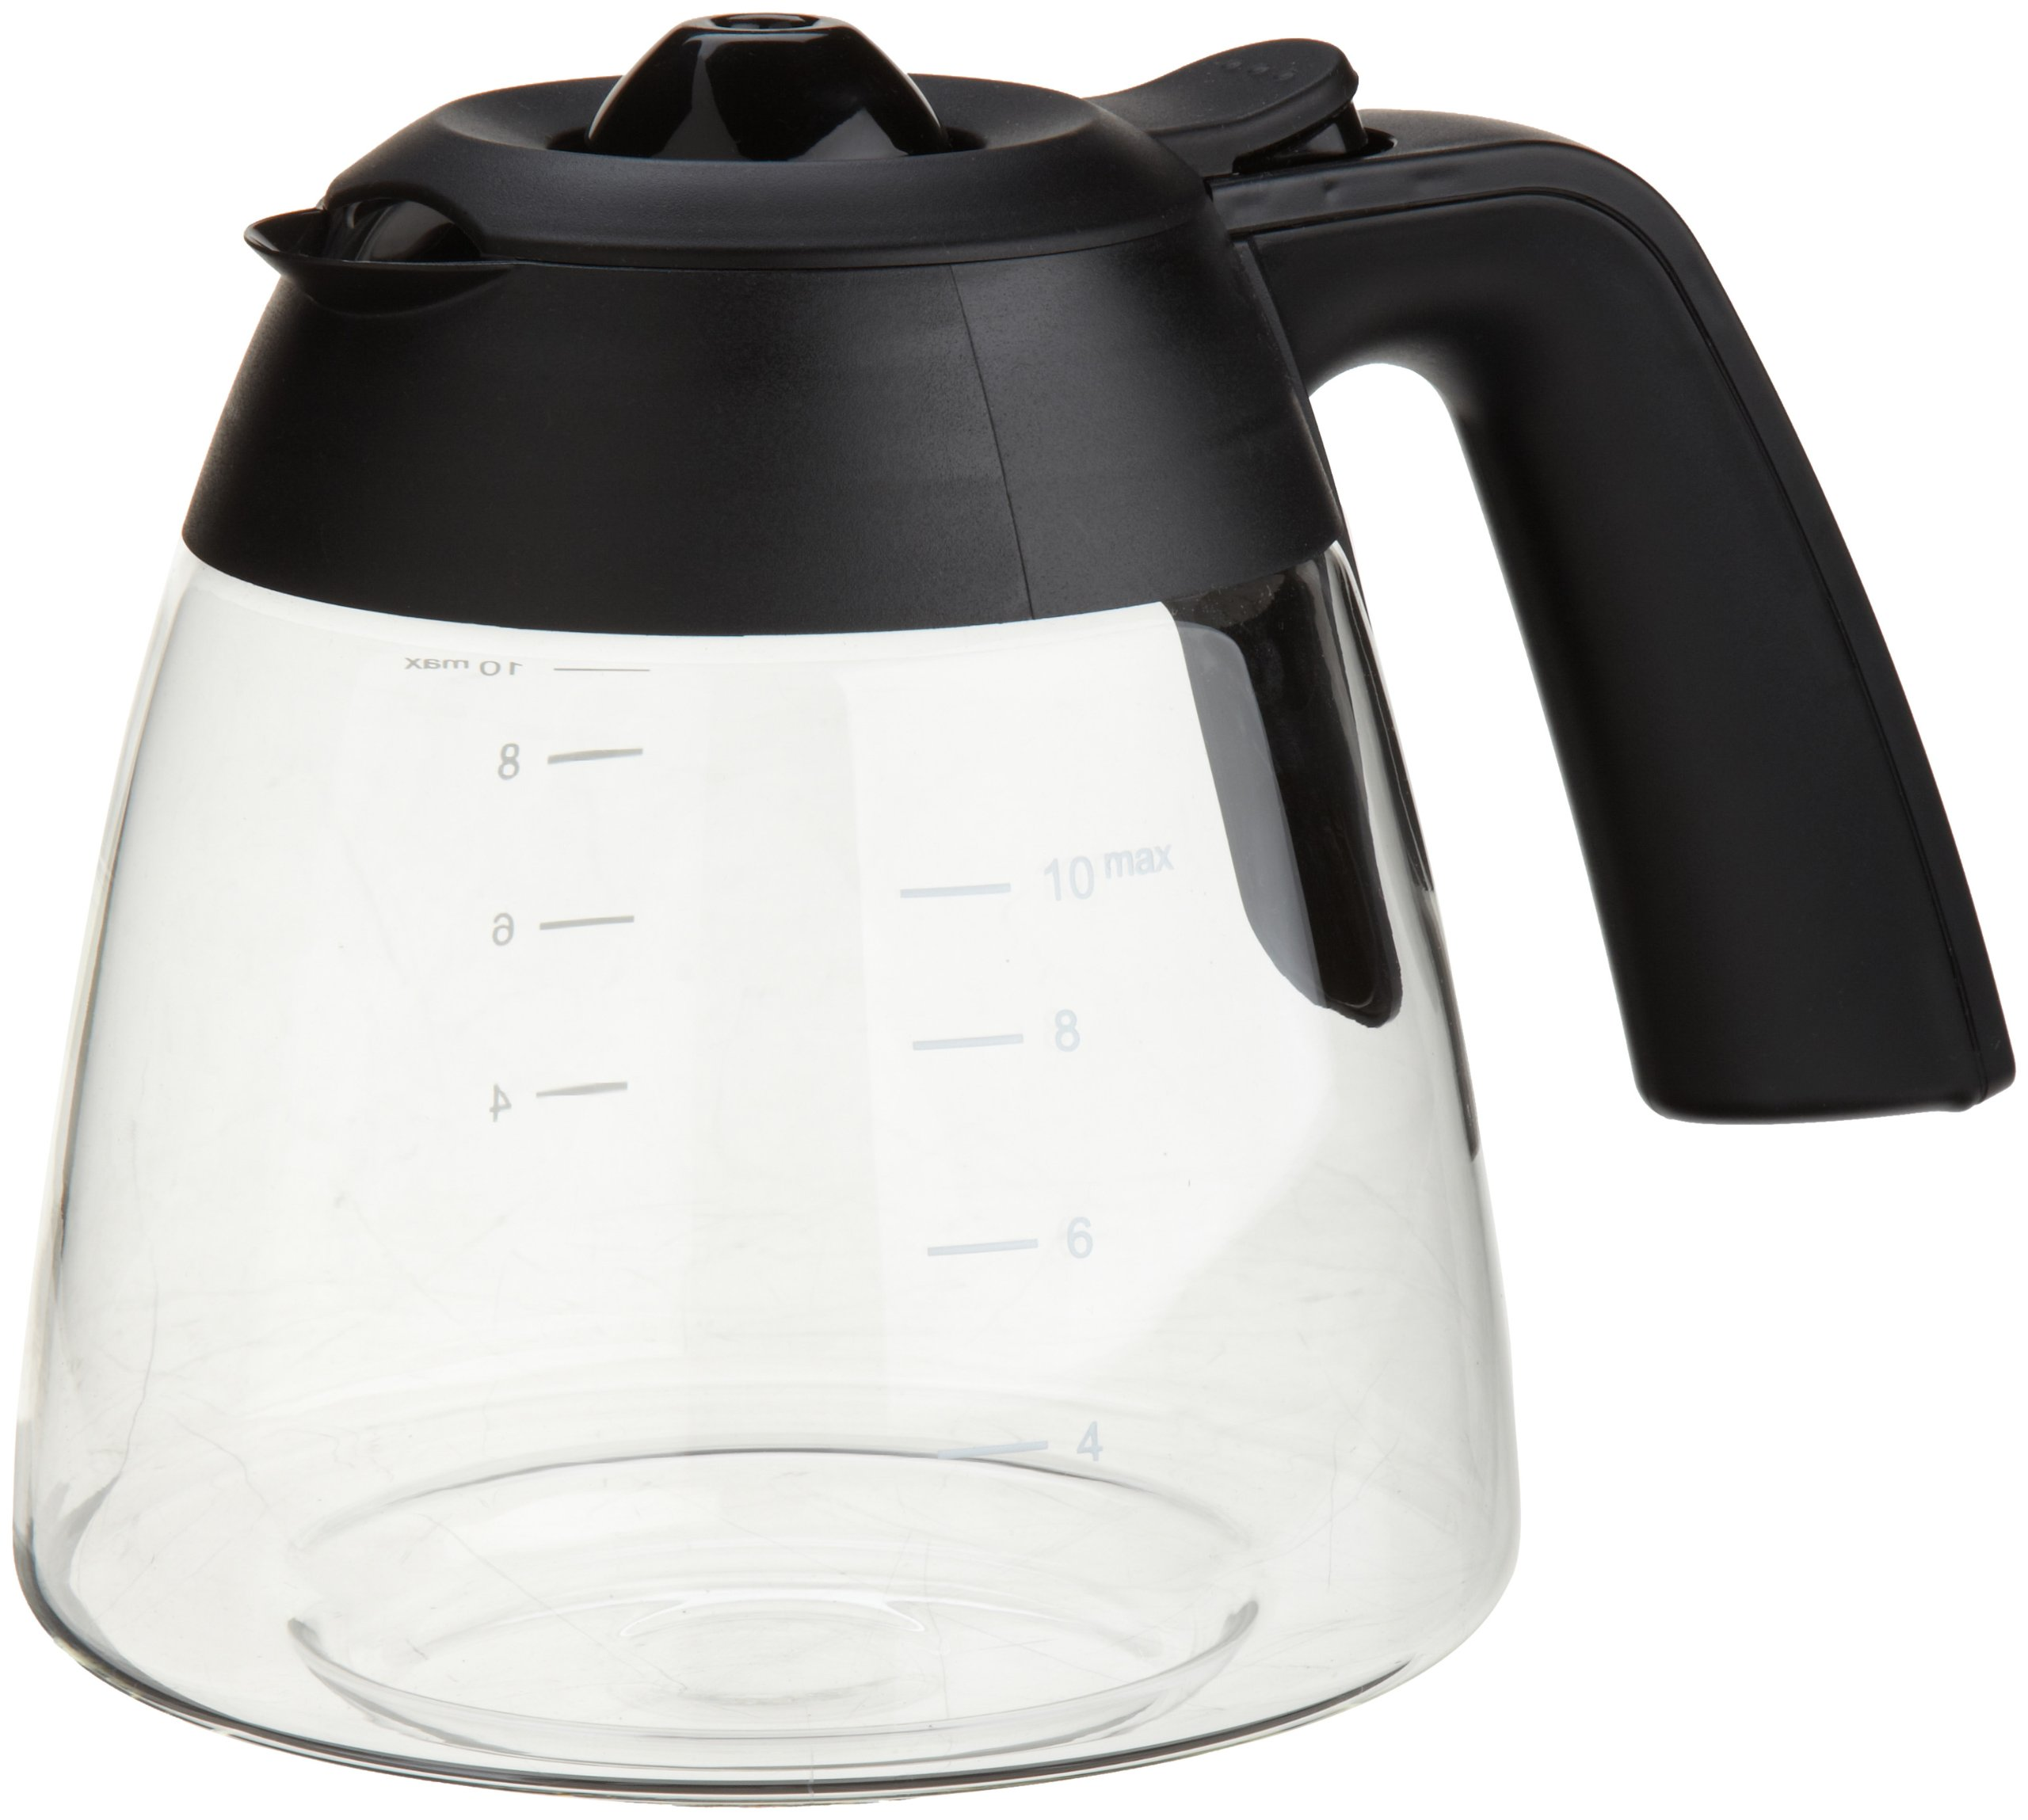 Capresso 4444.01 10-Cup Glass Carafe with Lid for MG600 and CM200 Coffee Maker by Capresso